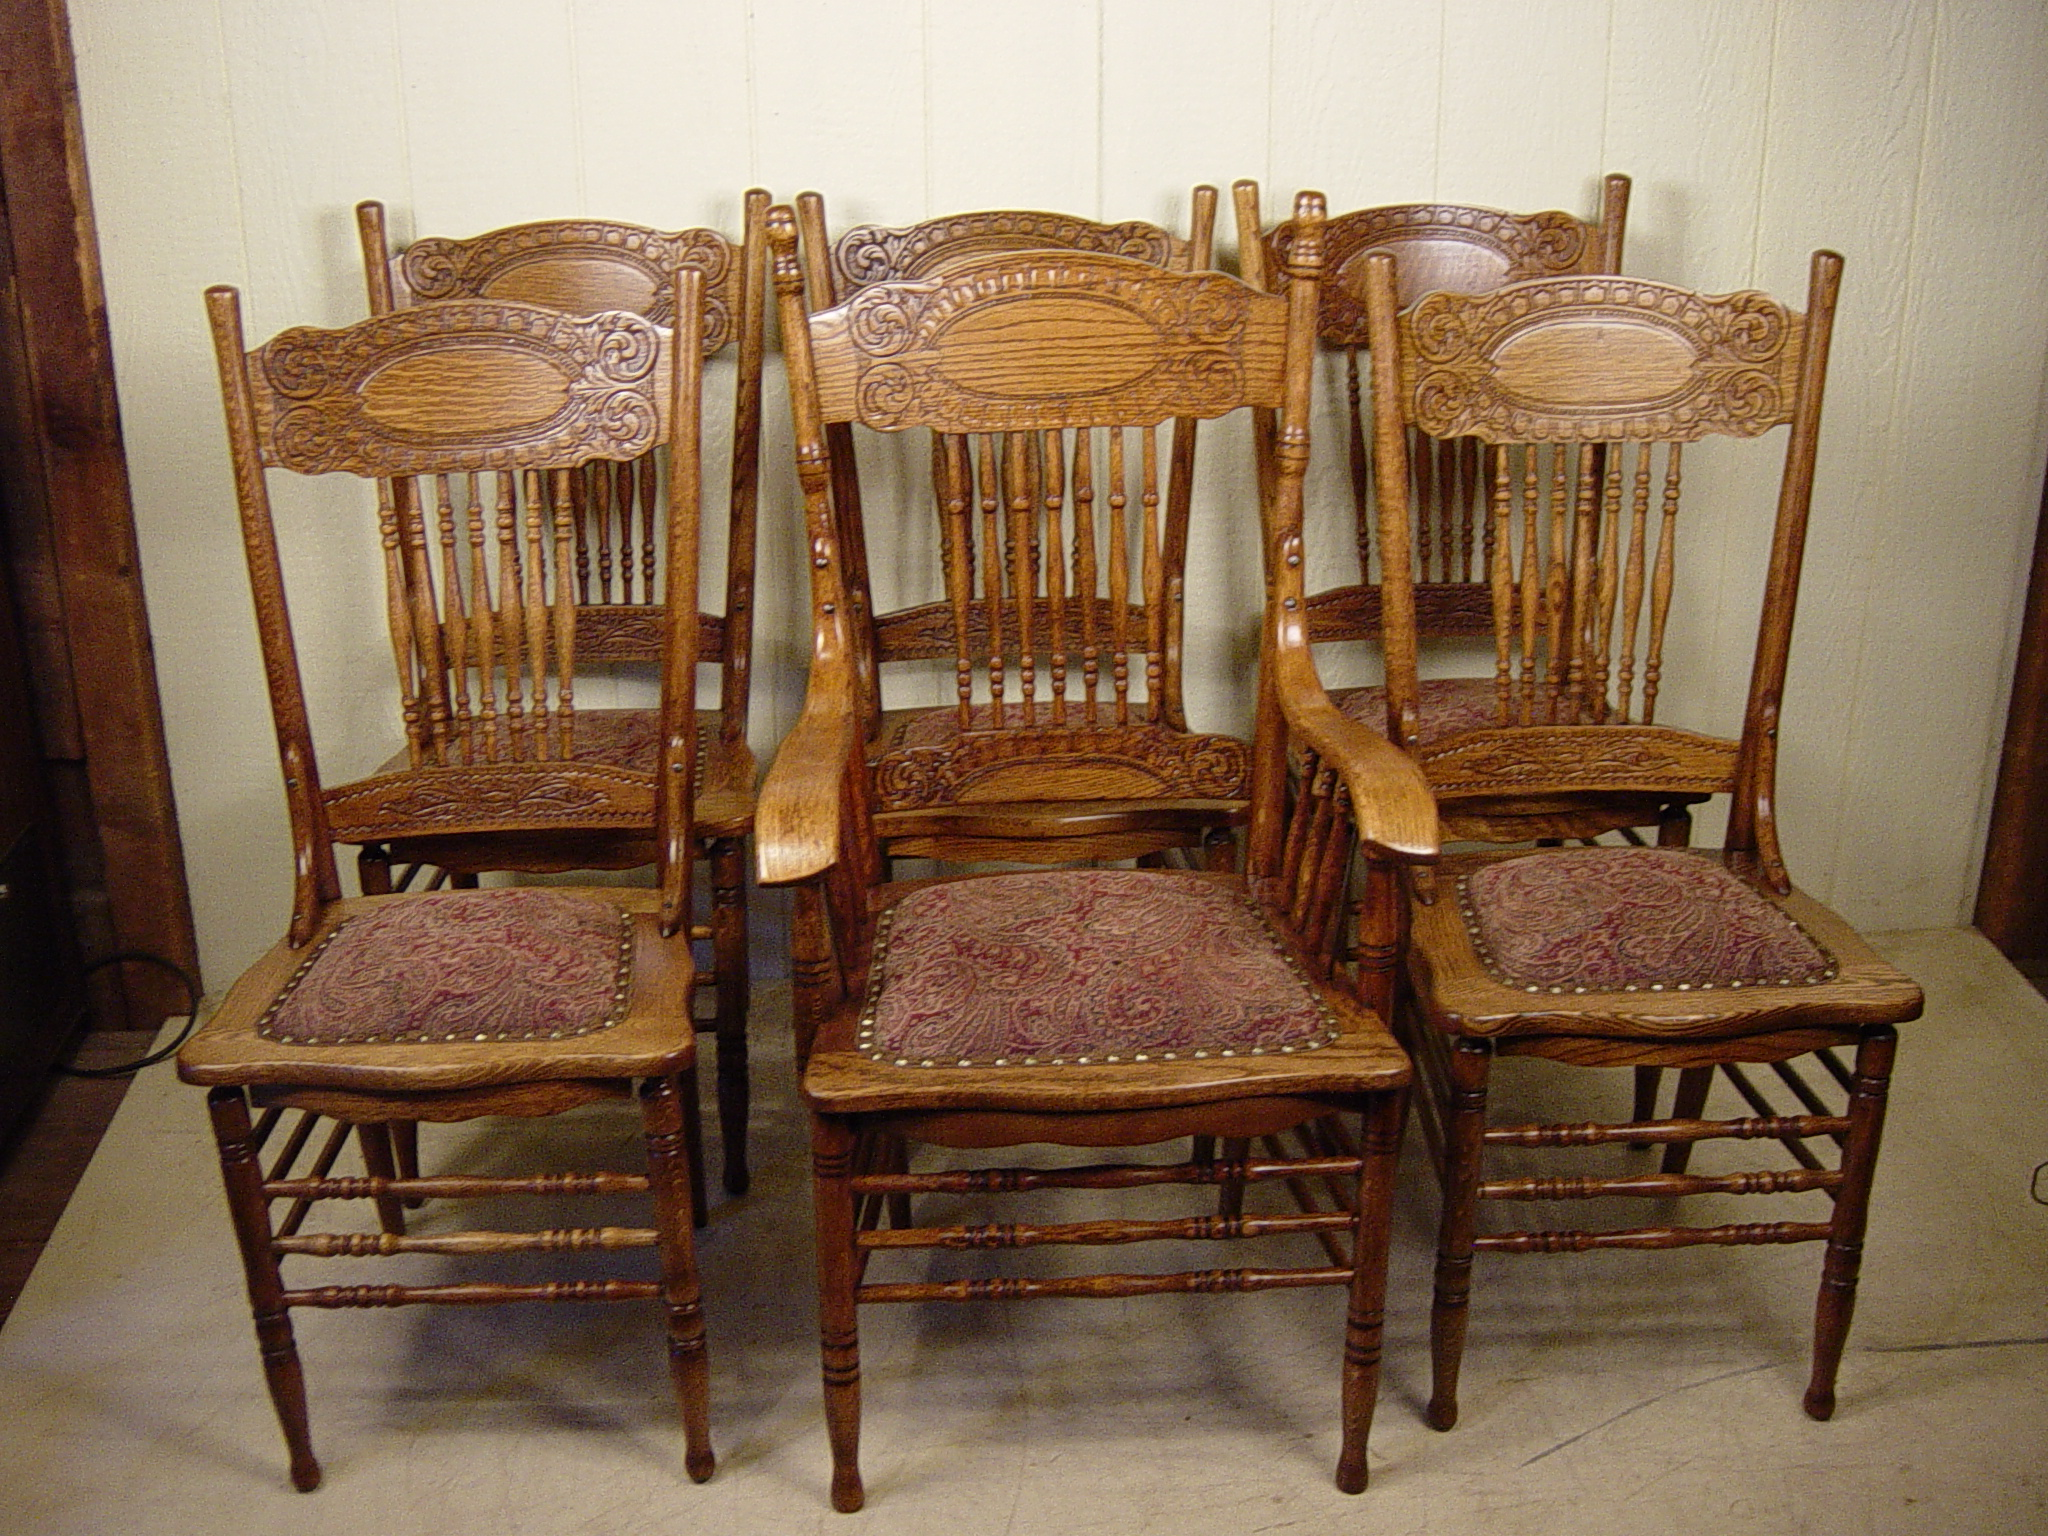 set of 6 oak larkin dining chairs with arm chair rh dougschmittantiques com larsen furniture suppliers larsen furniture denmark